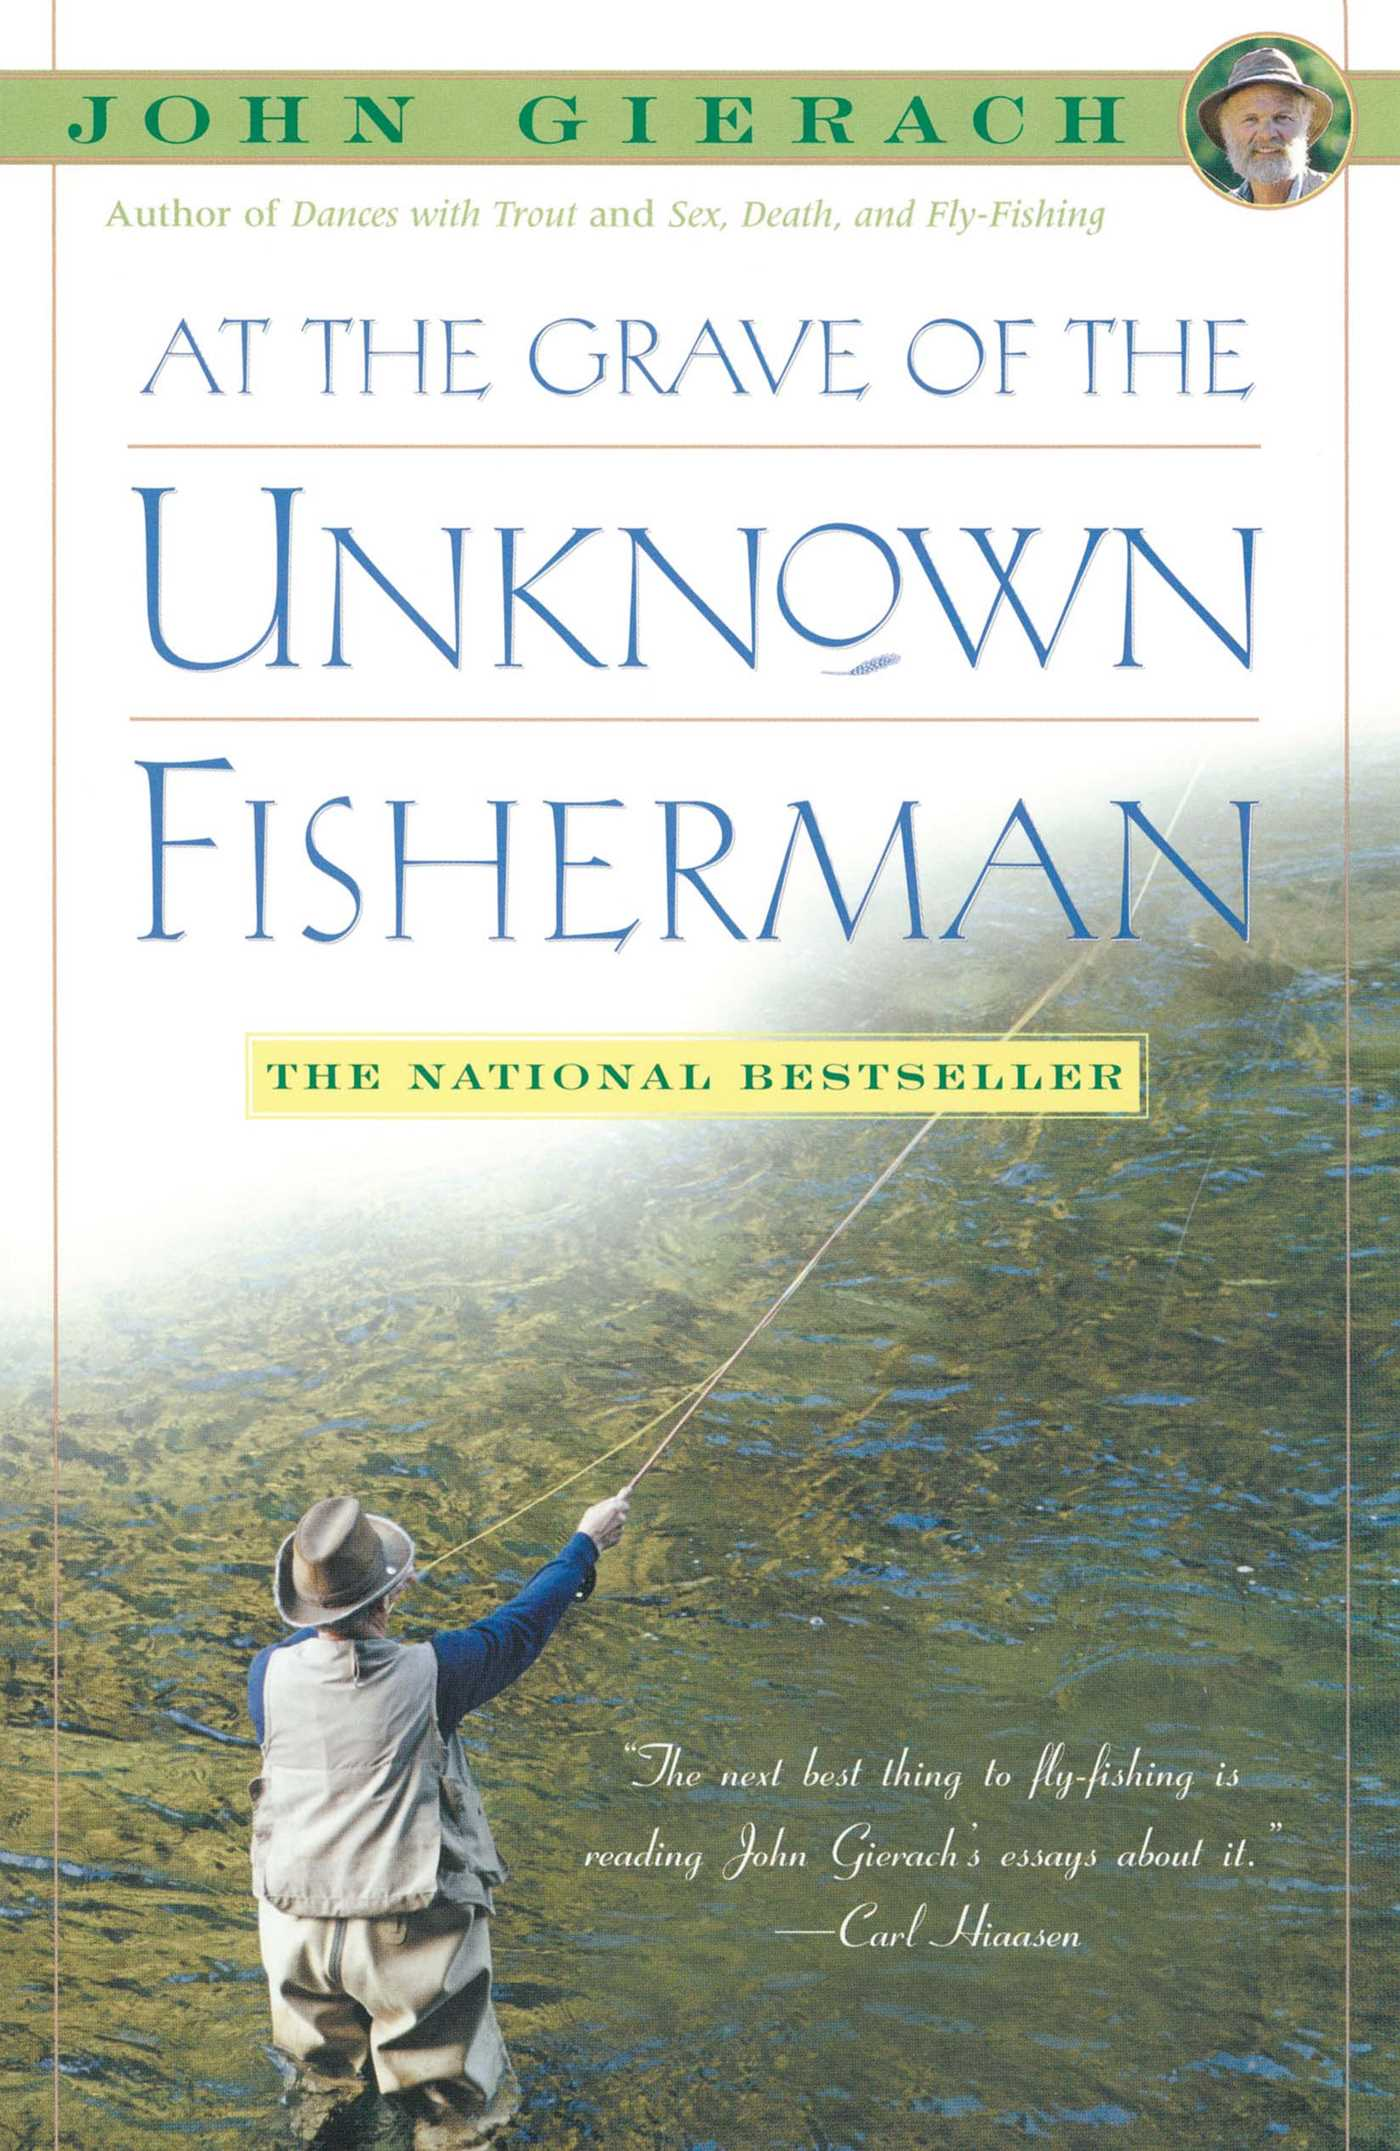 At-the-grave-of-the-unknown-fisherman-9780743229937_hr